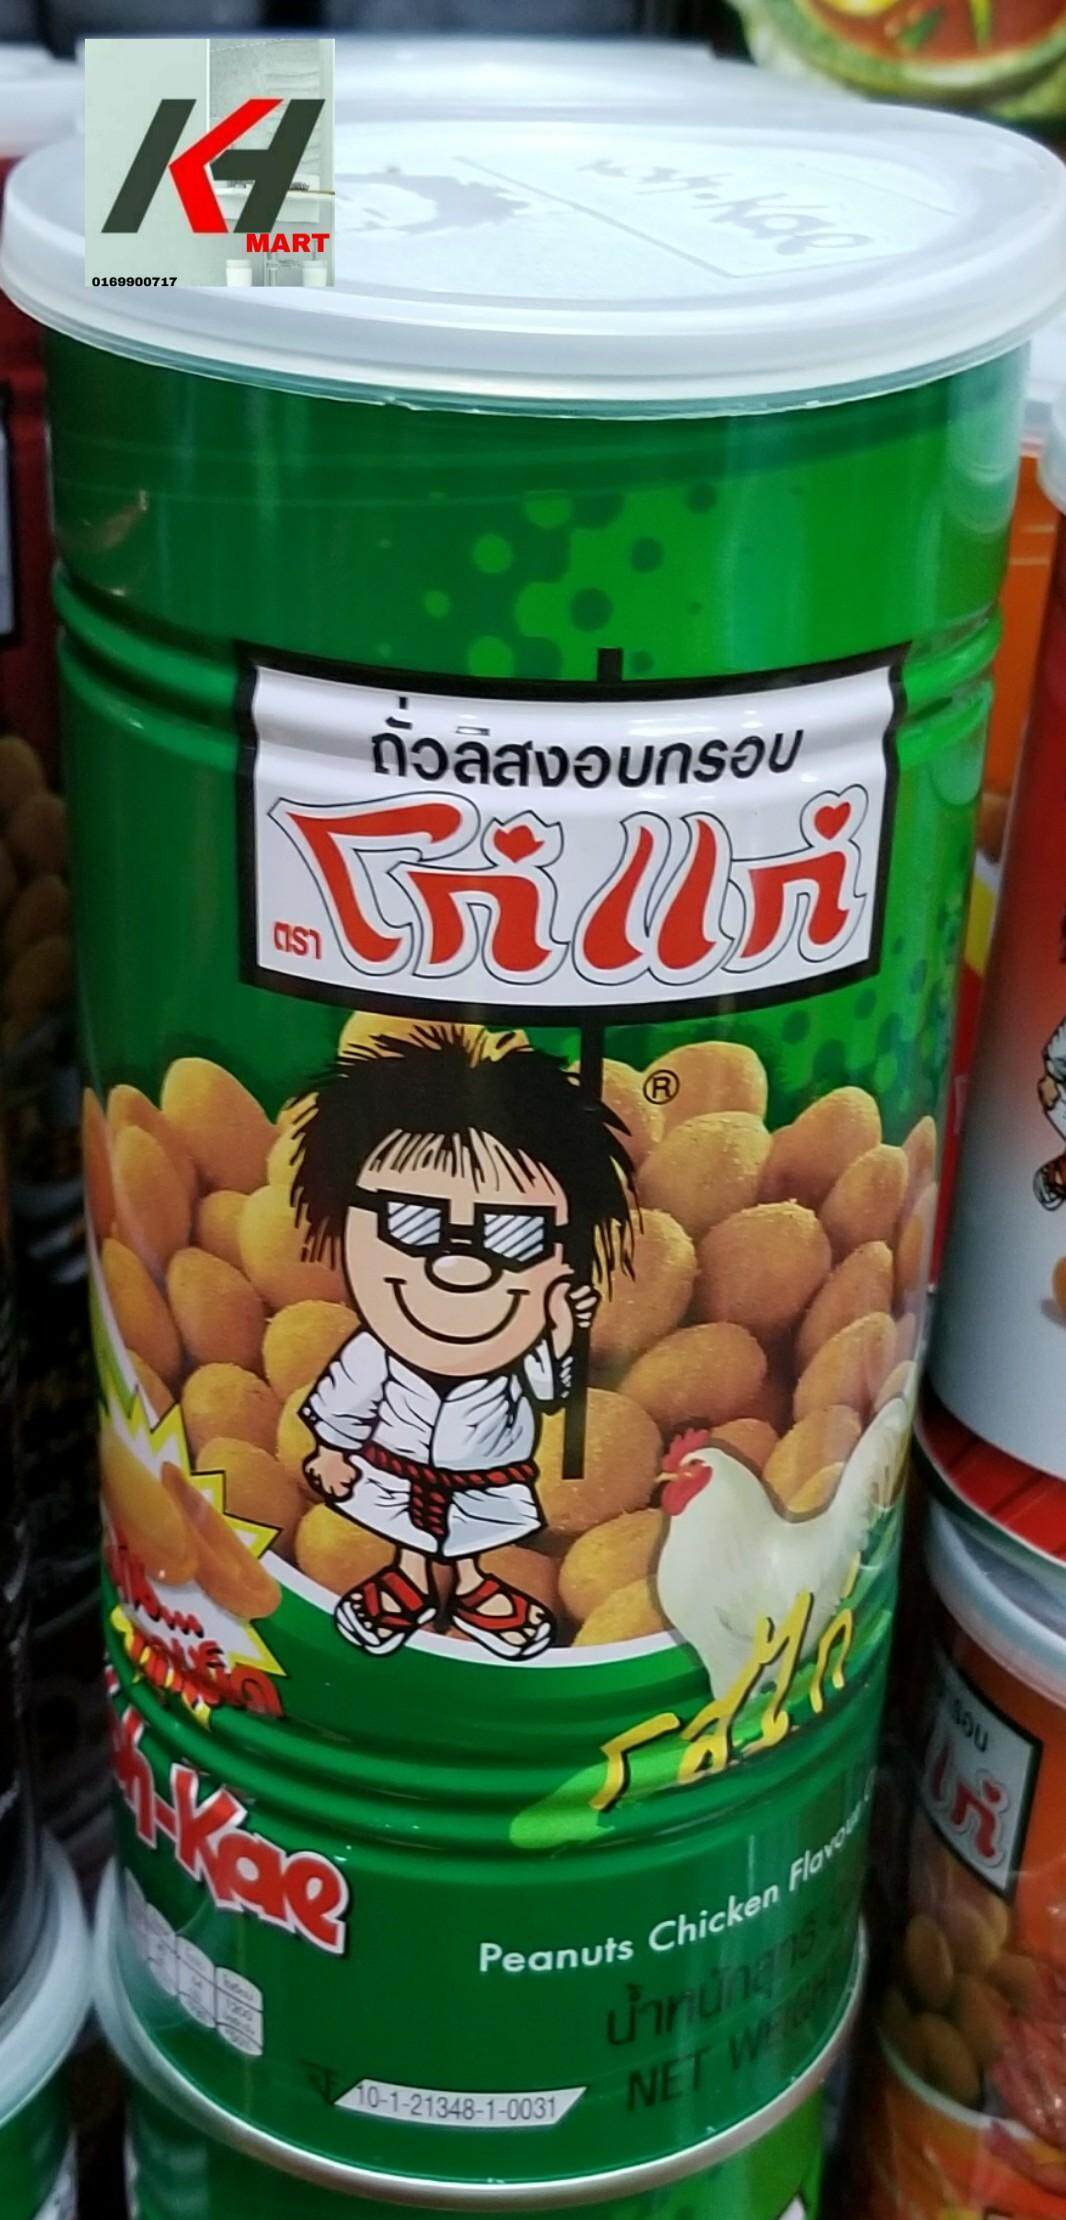 Koh Kae Peanuts CHICKEN FLAVOUR Coated 230g READY STOCK